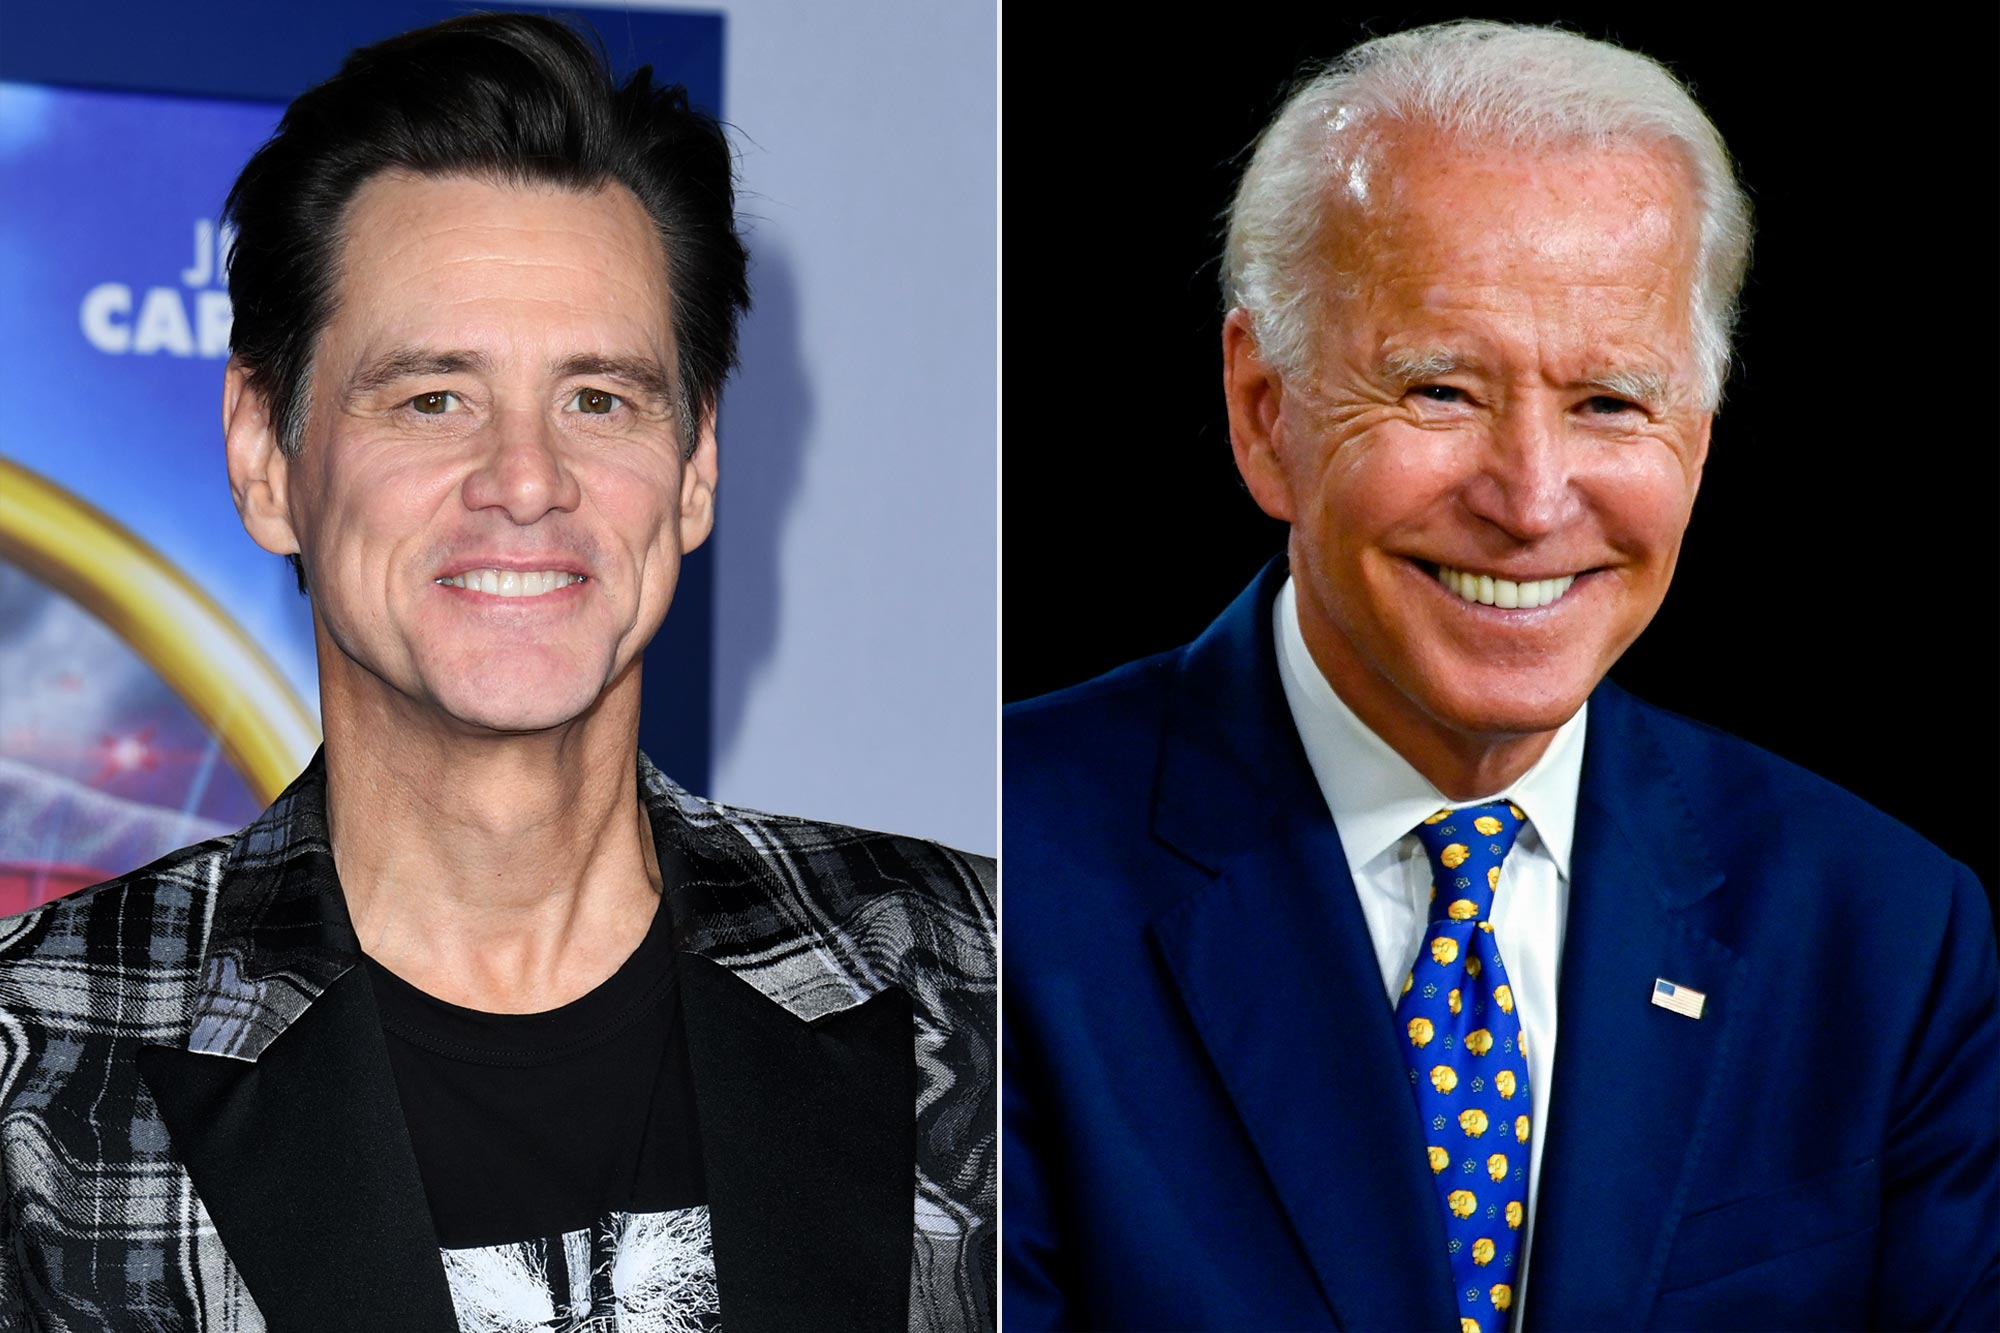 Jim Carrey/Joe Biden